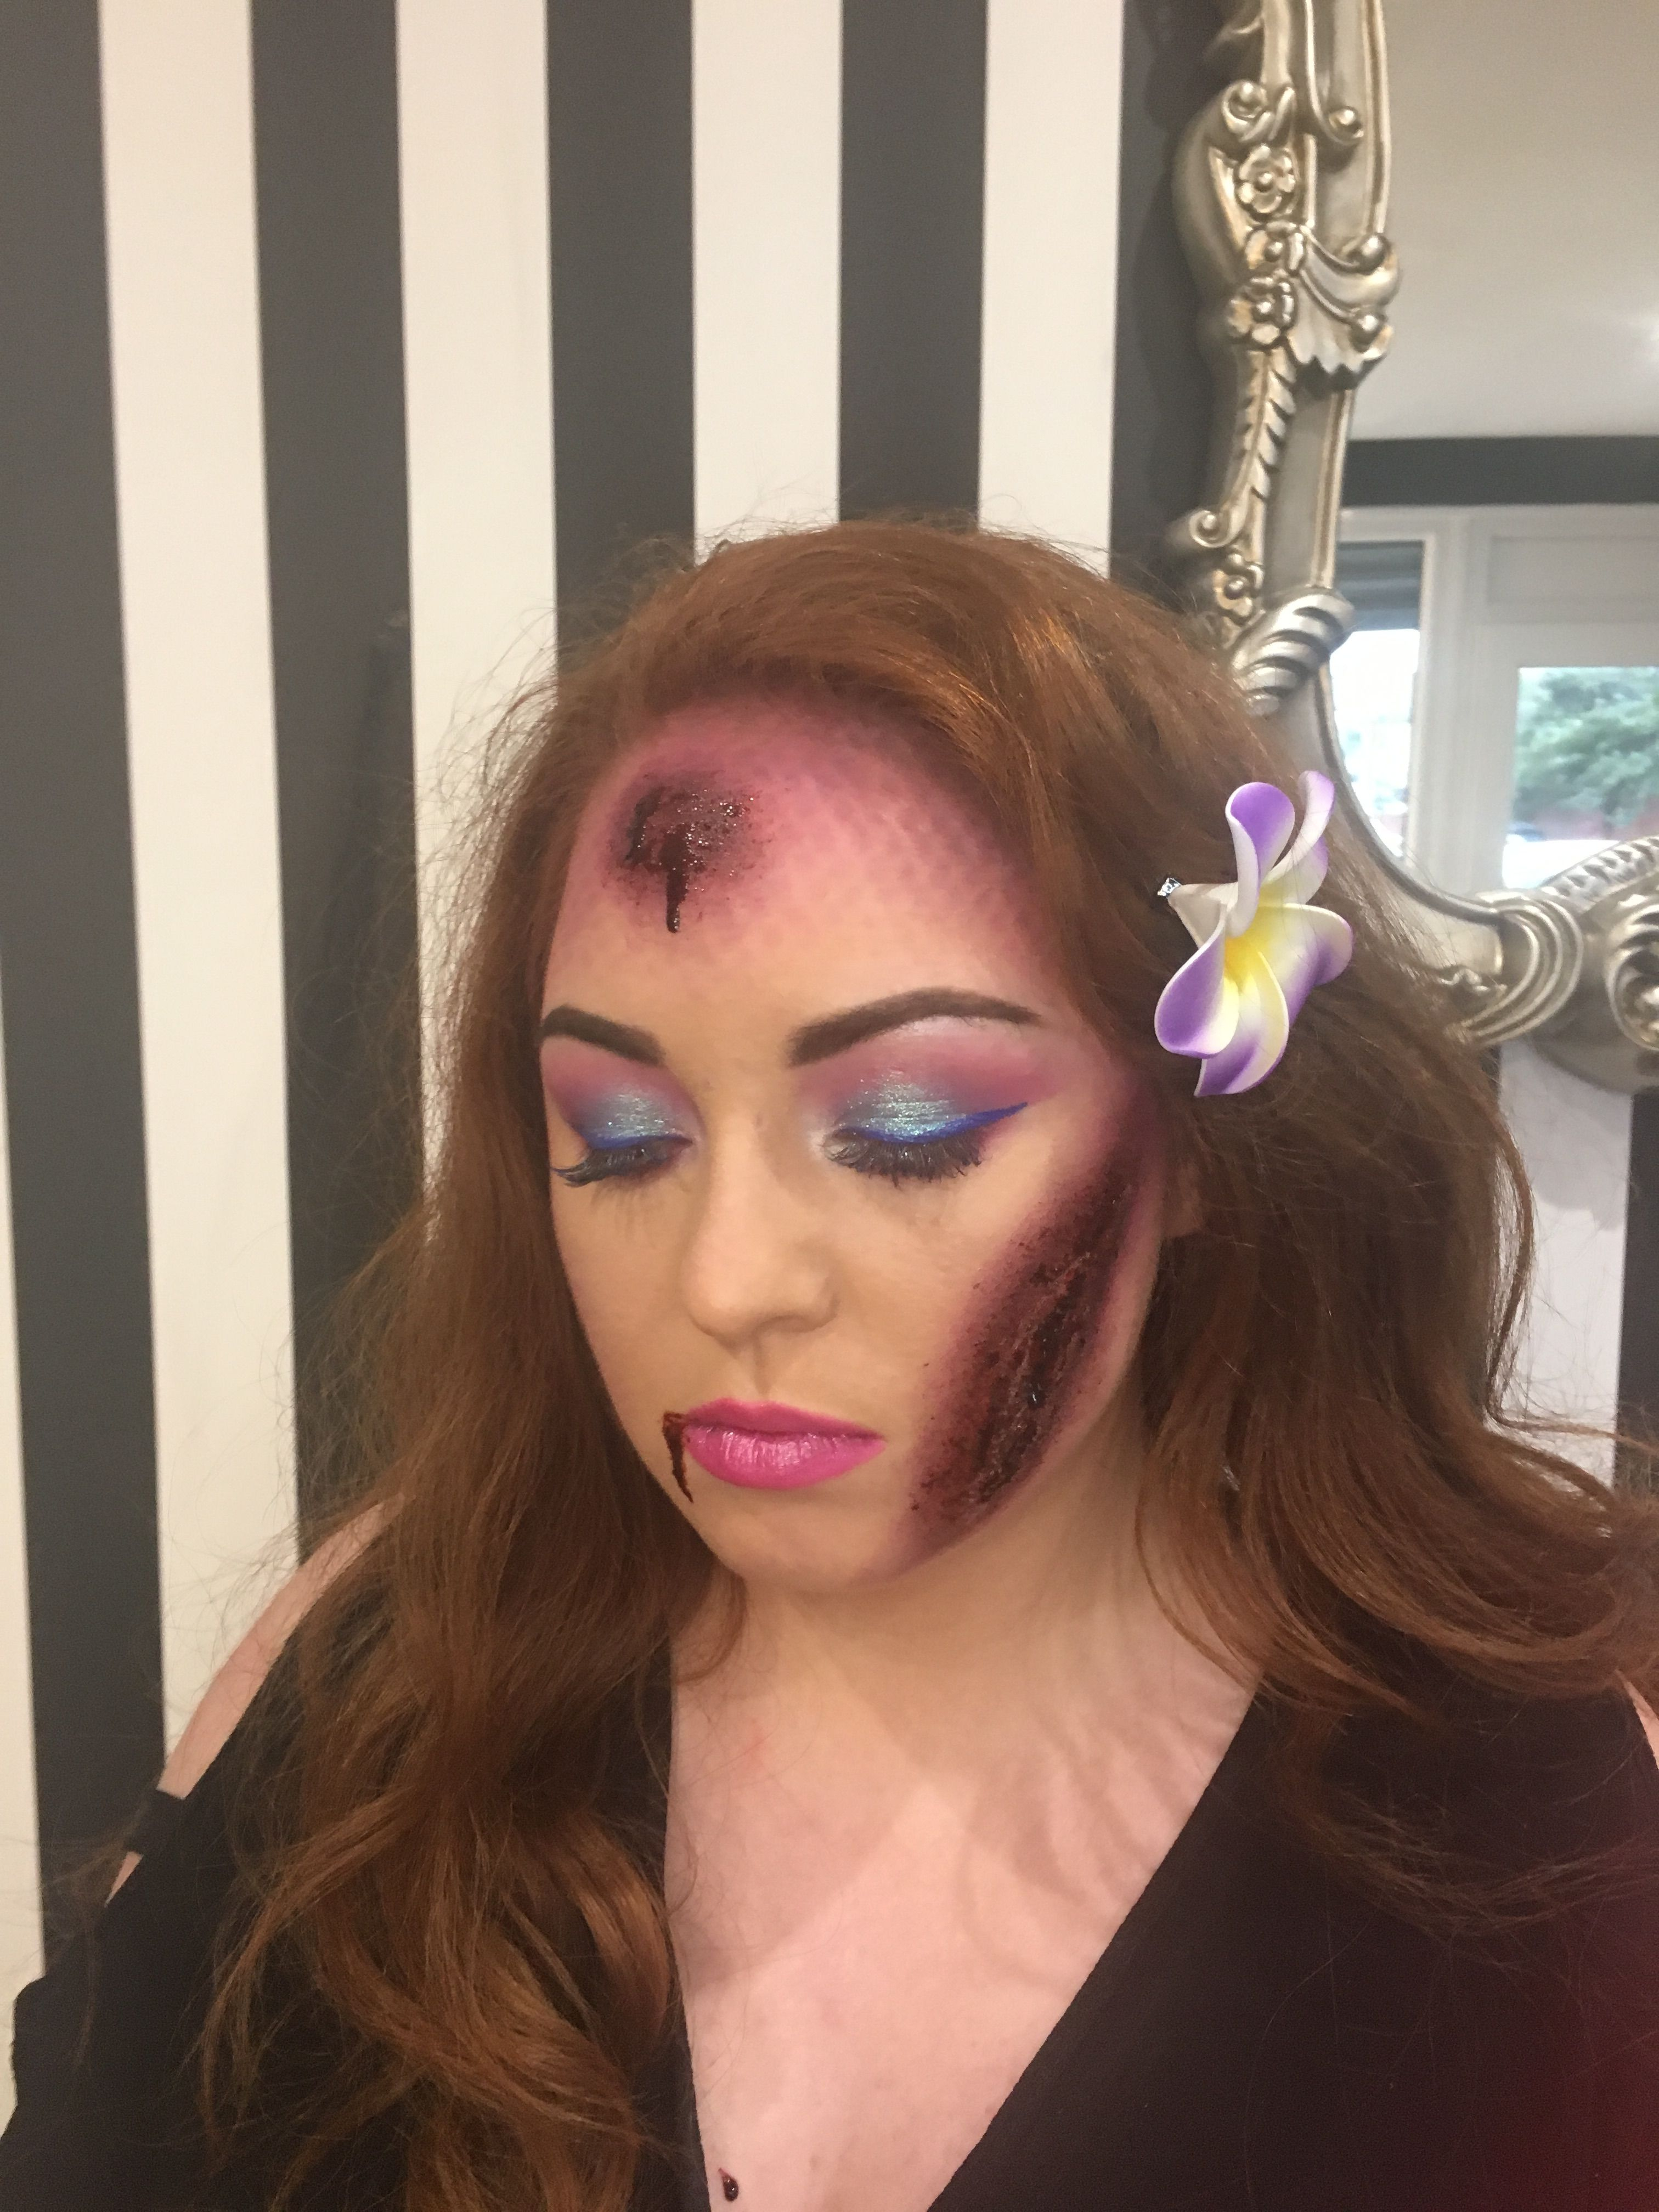 mermaid makeup. special effects cuts and scars. halloween ideas